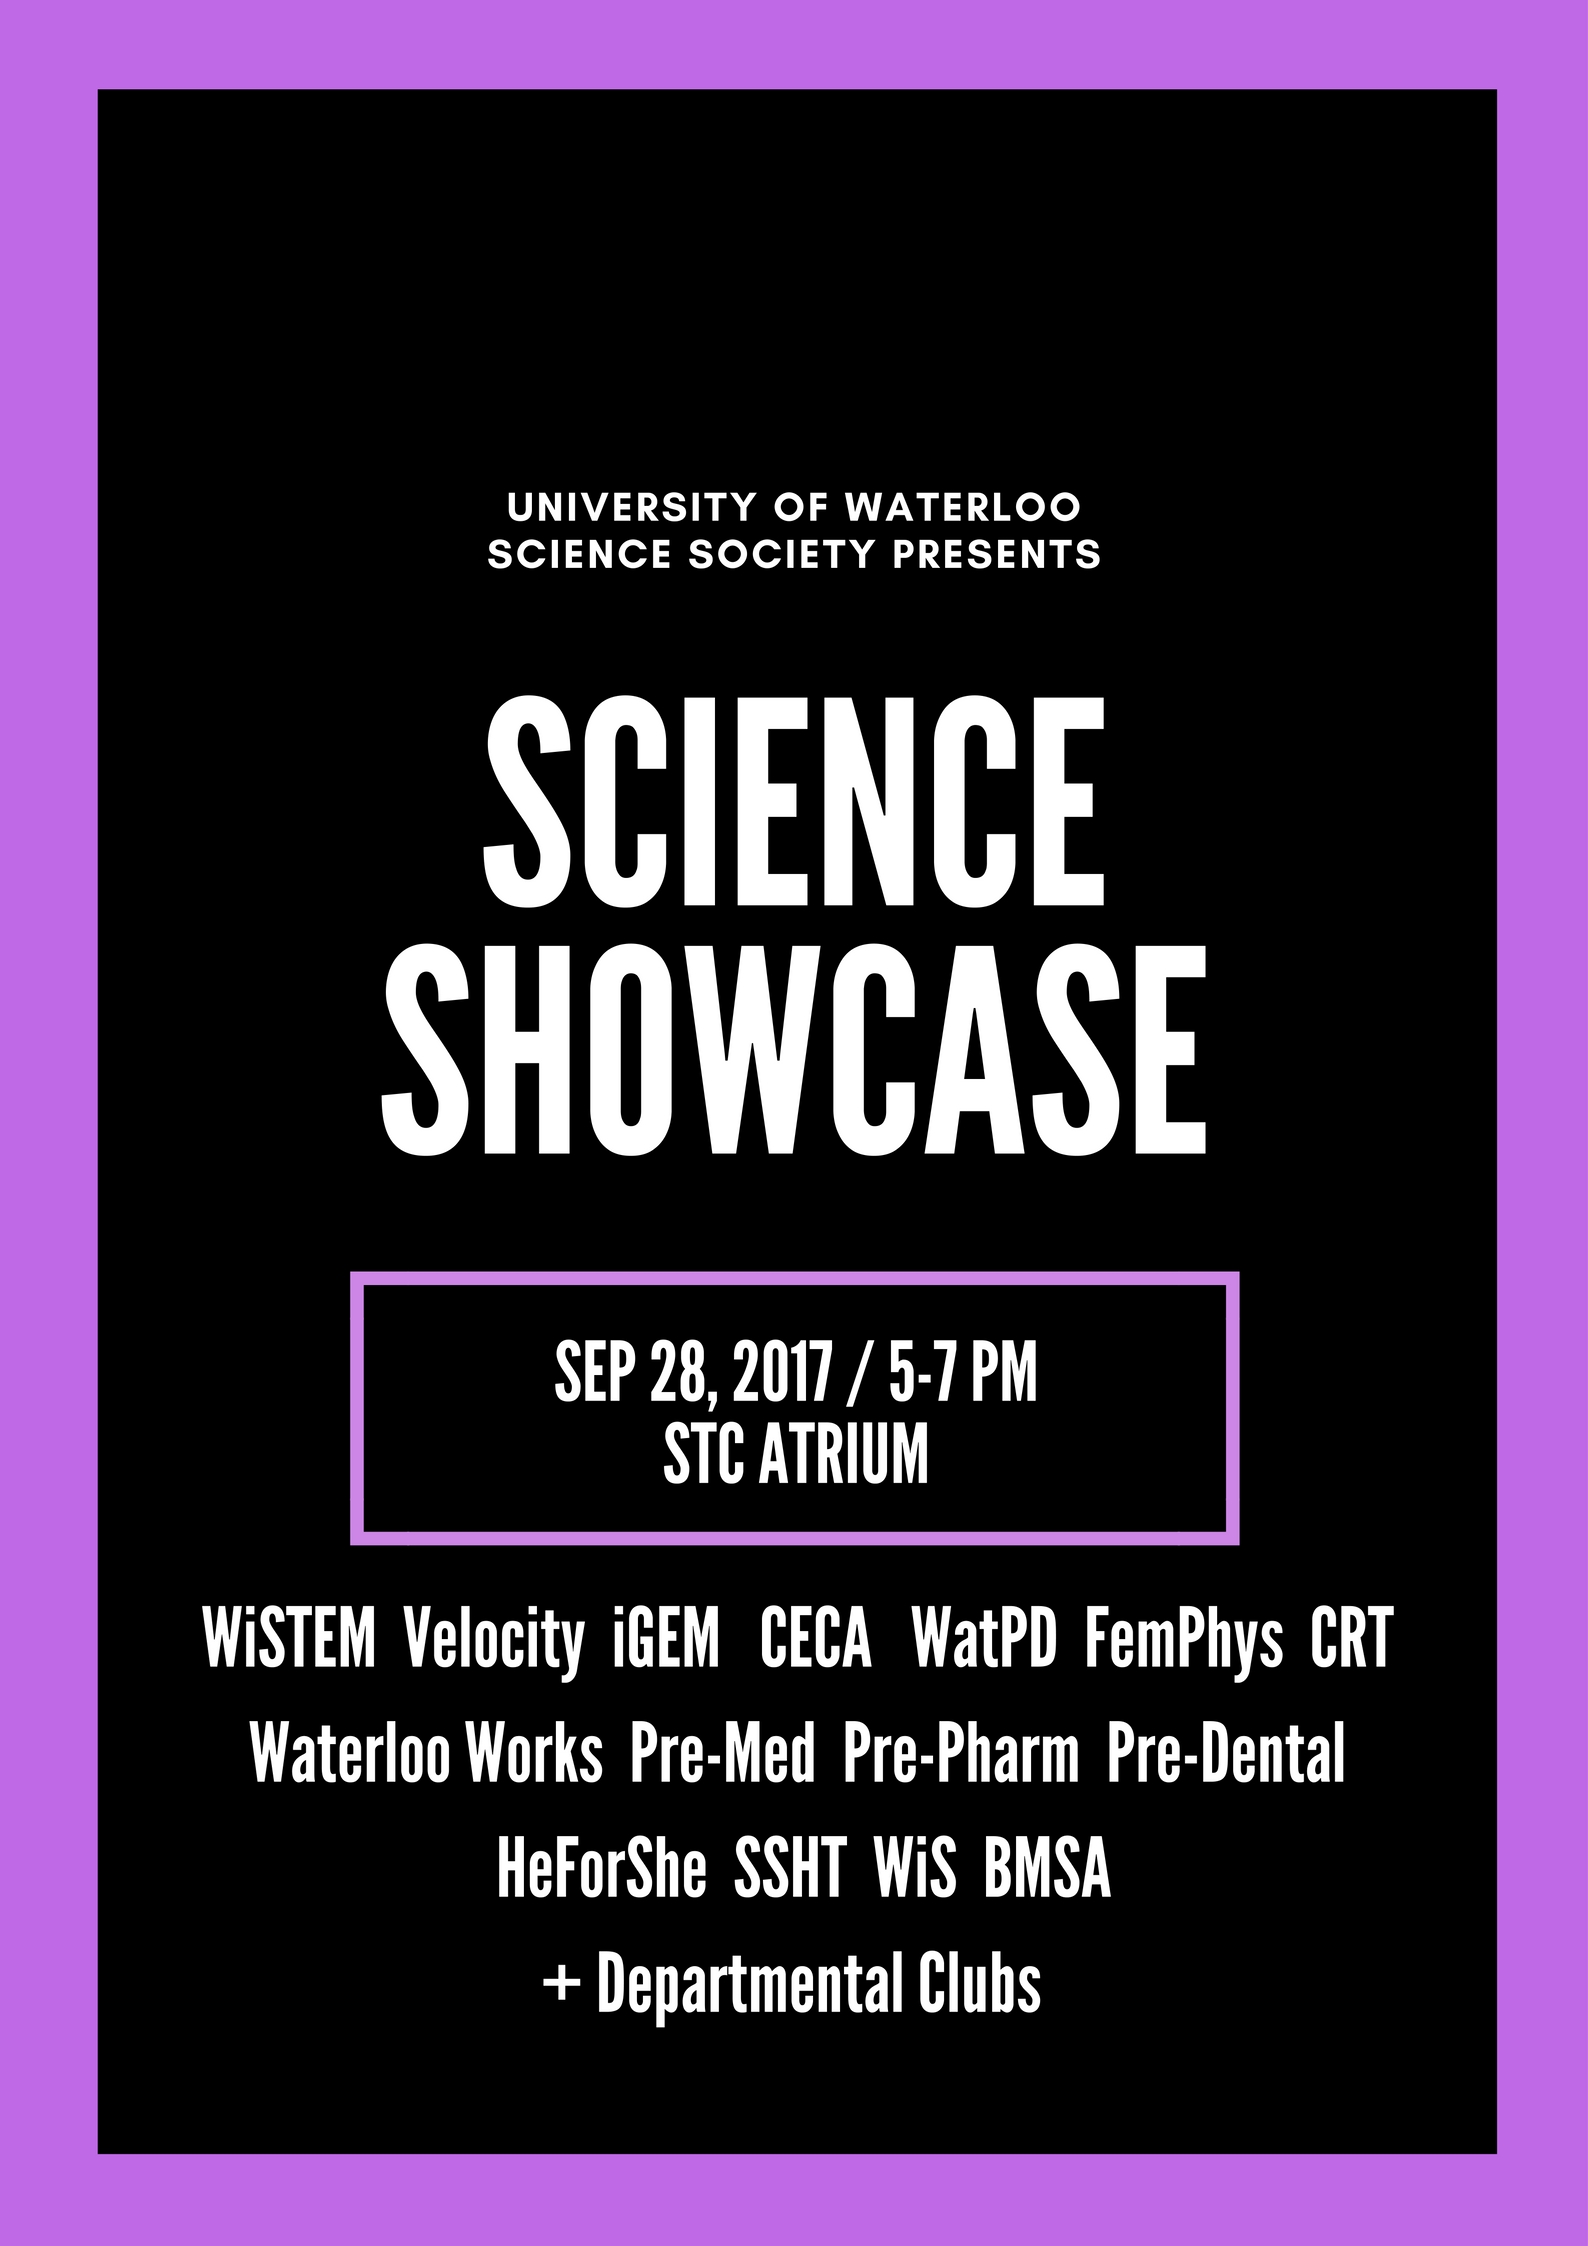 science showcase poster